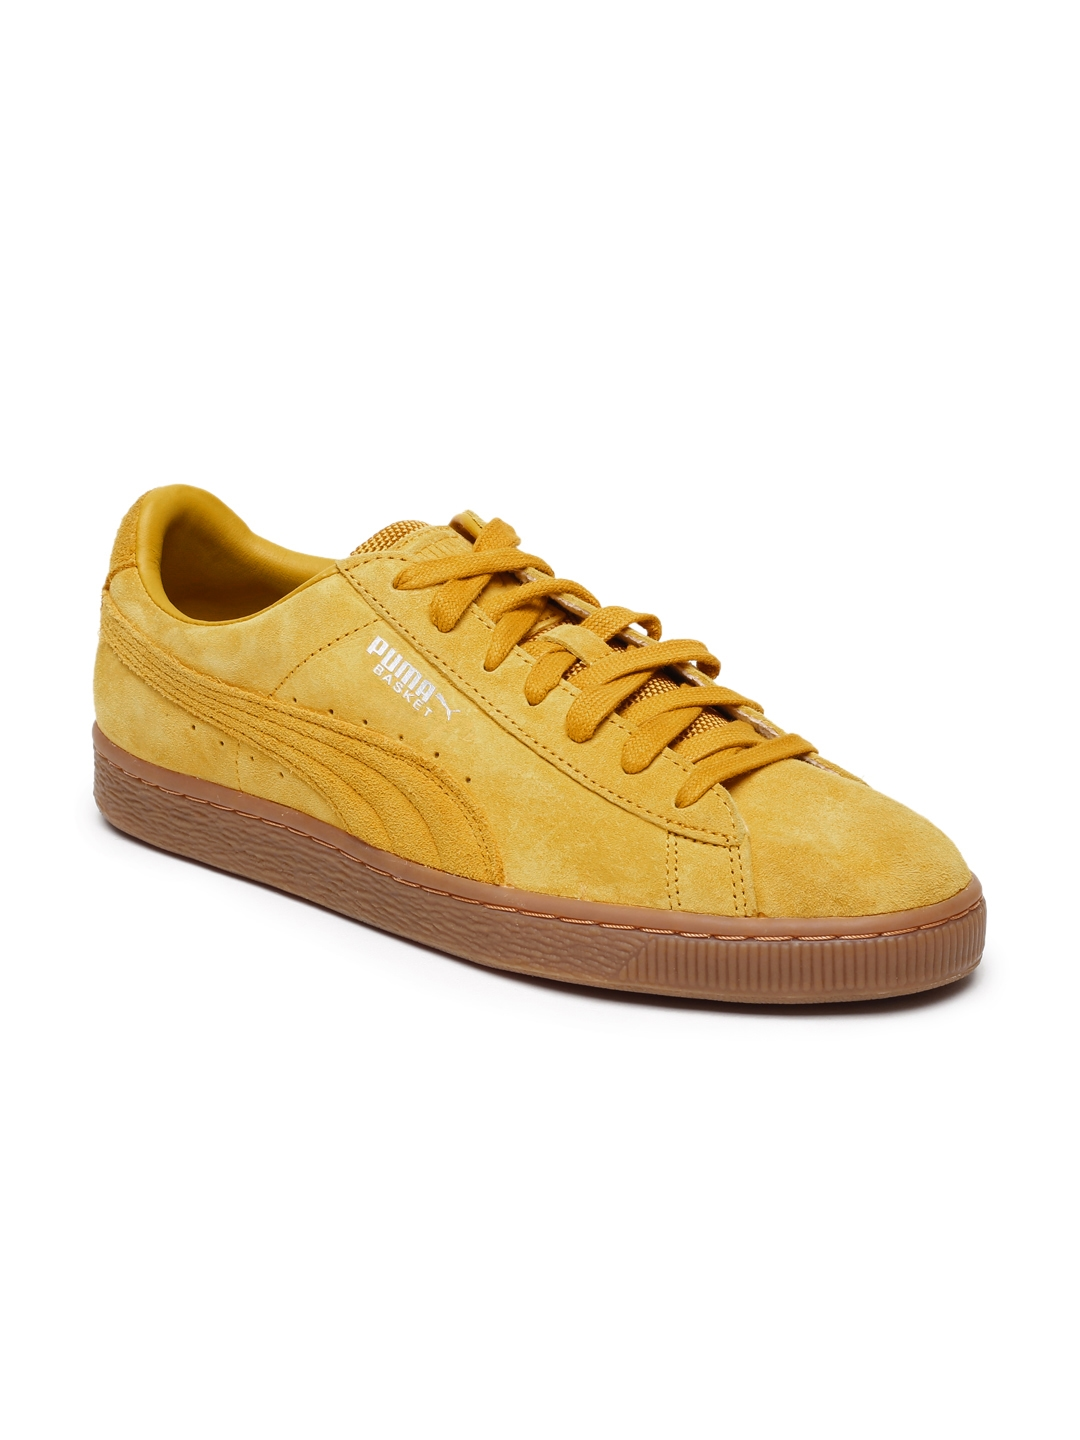 finest selection 72c7a d5f1f Puma Unisex Yellow Basket Classic Weatherproof Suede Sneakers